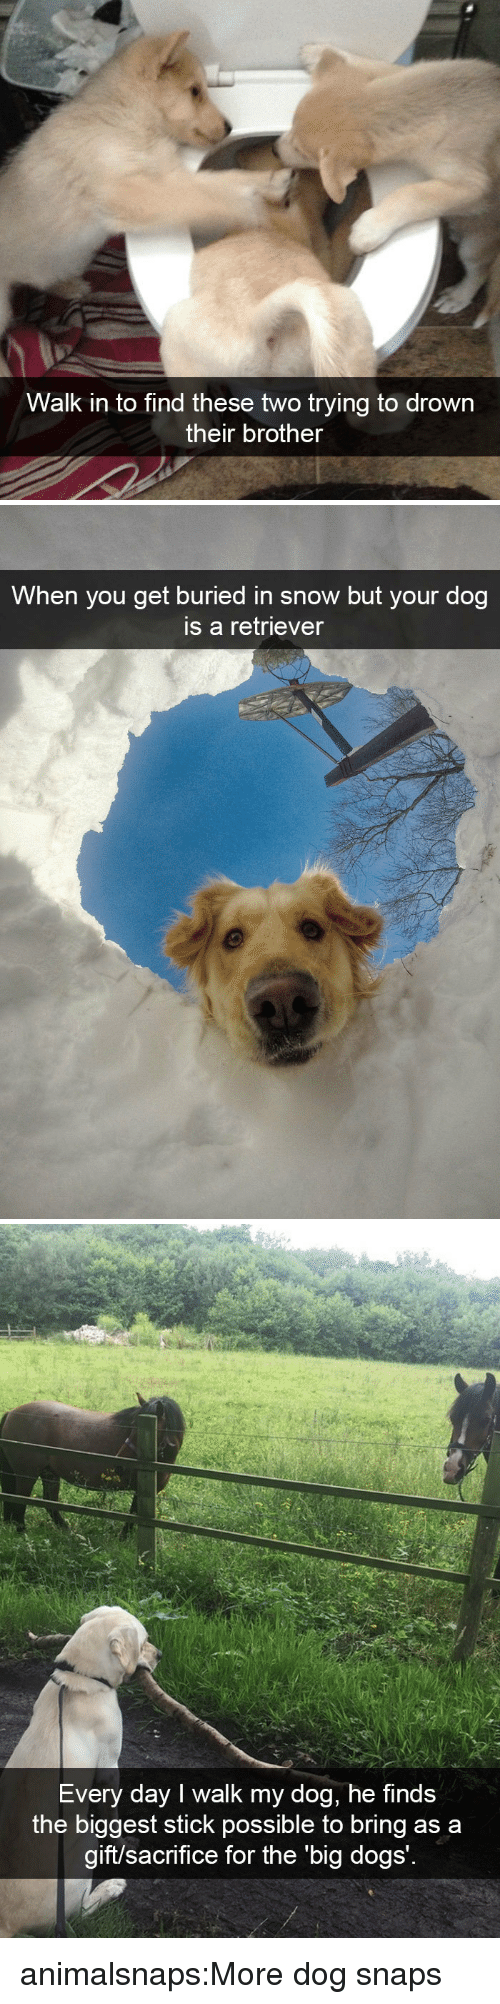 Dogs, Target, and Tumblr: Walk in to find these two trying to drown  their brother   When you get buried in snow but your dog  is a retriever   Every day I walk my dog, he finds  the biggest stick possible to bring as a  aift/sac  rifice for the 'big dogs animalsnaps:More dog snaps